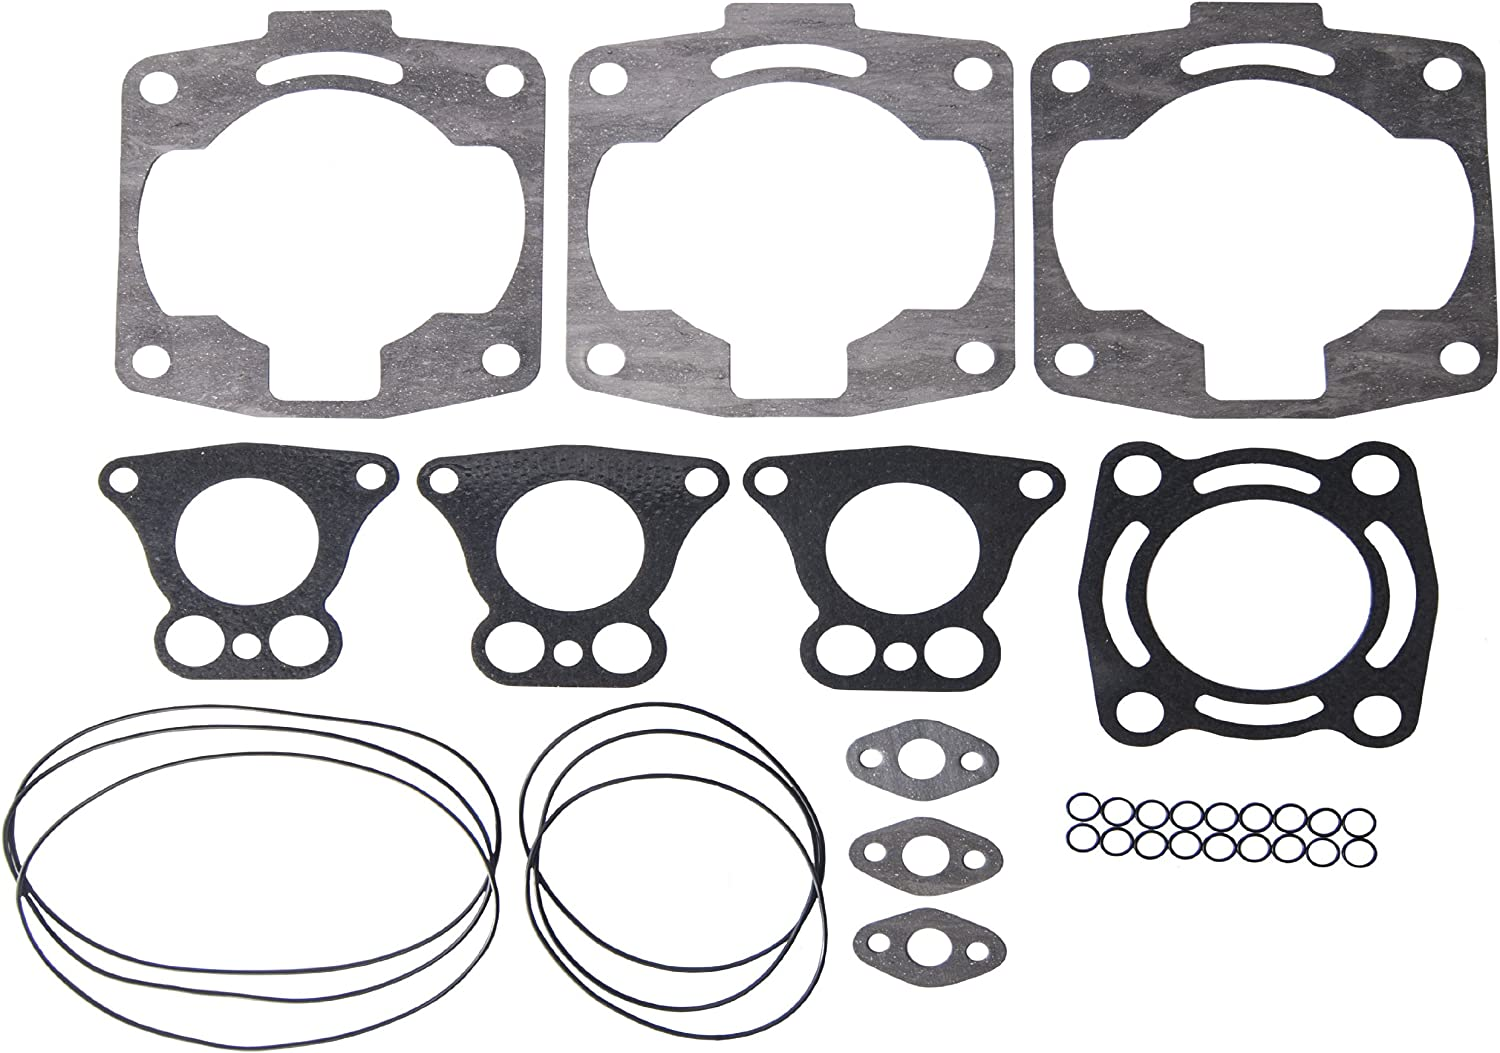 Polaris 1200 DI MSX 140 Top End Gasket Kit 2003 2004